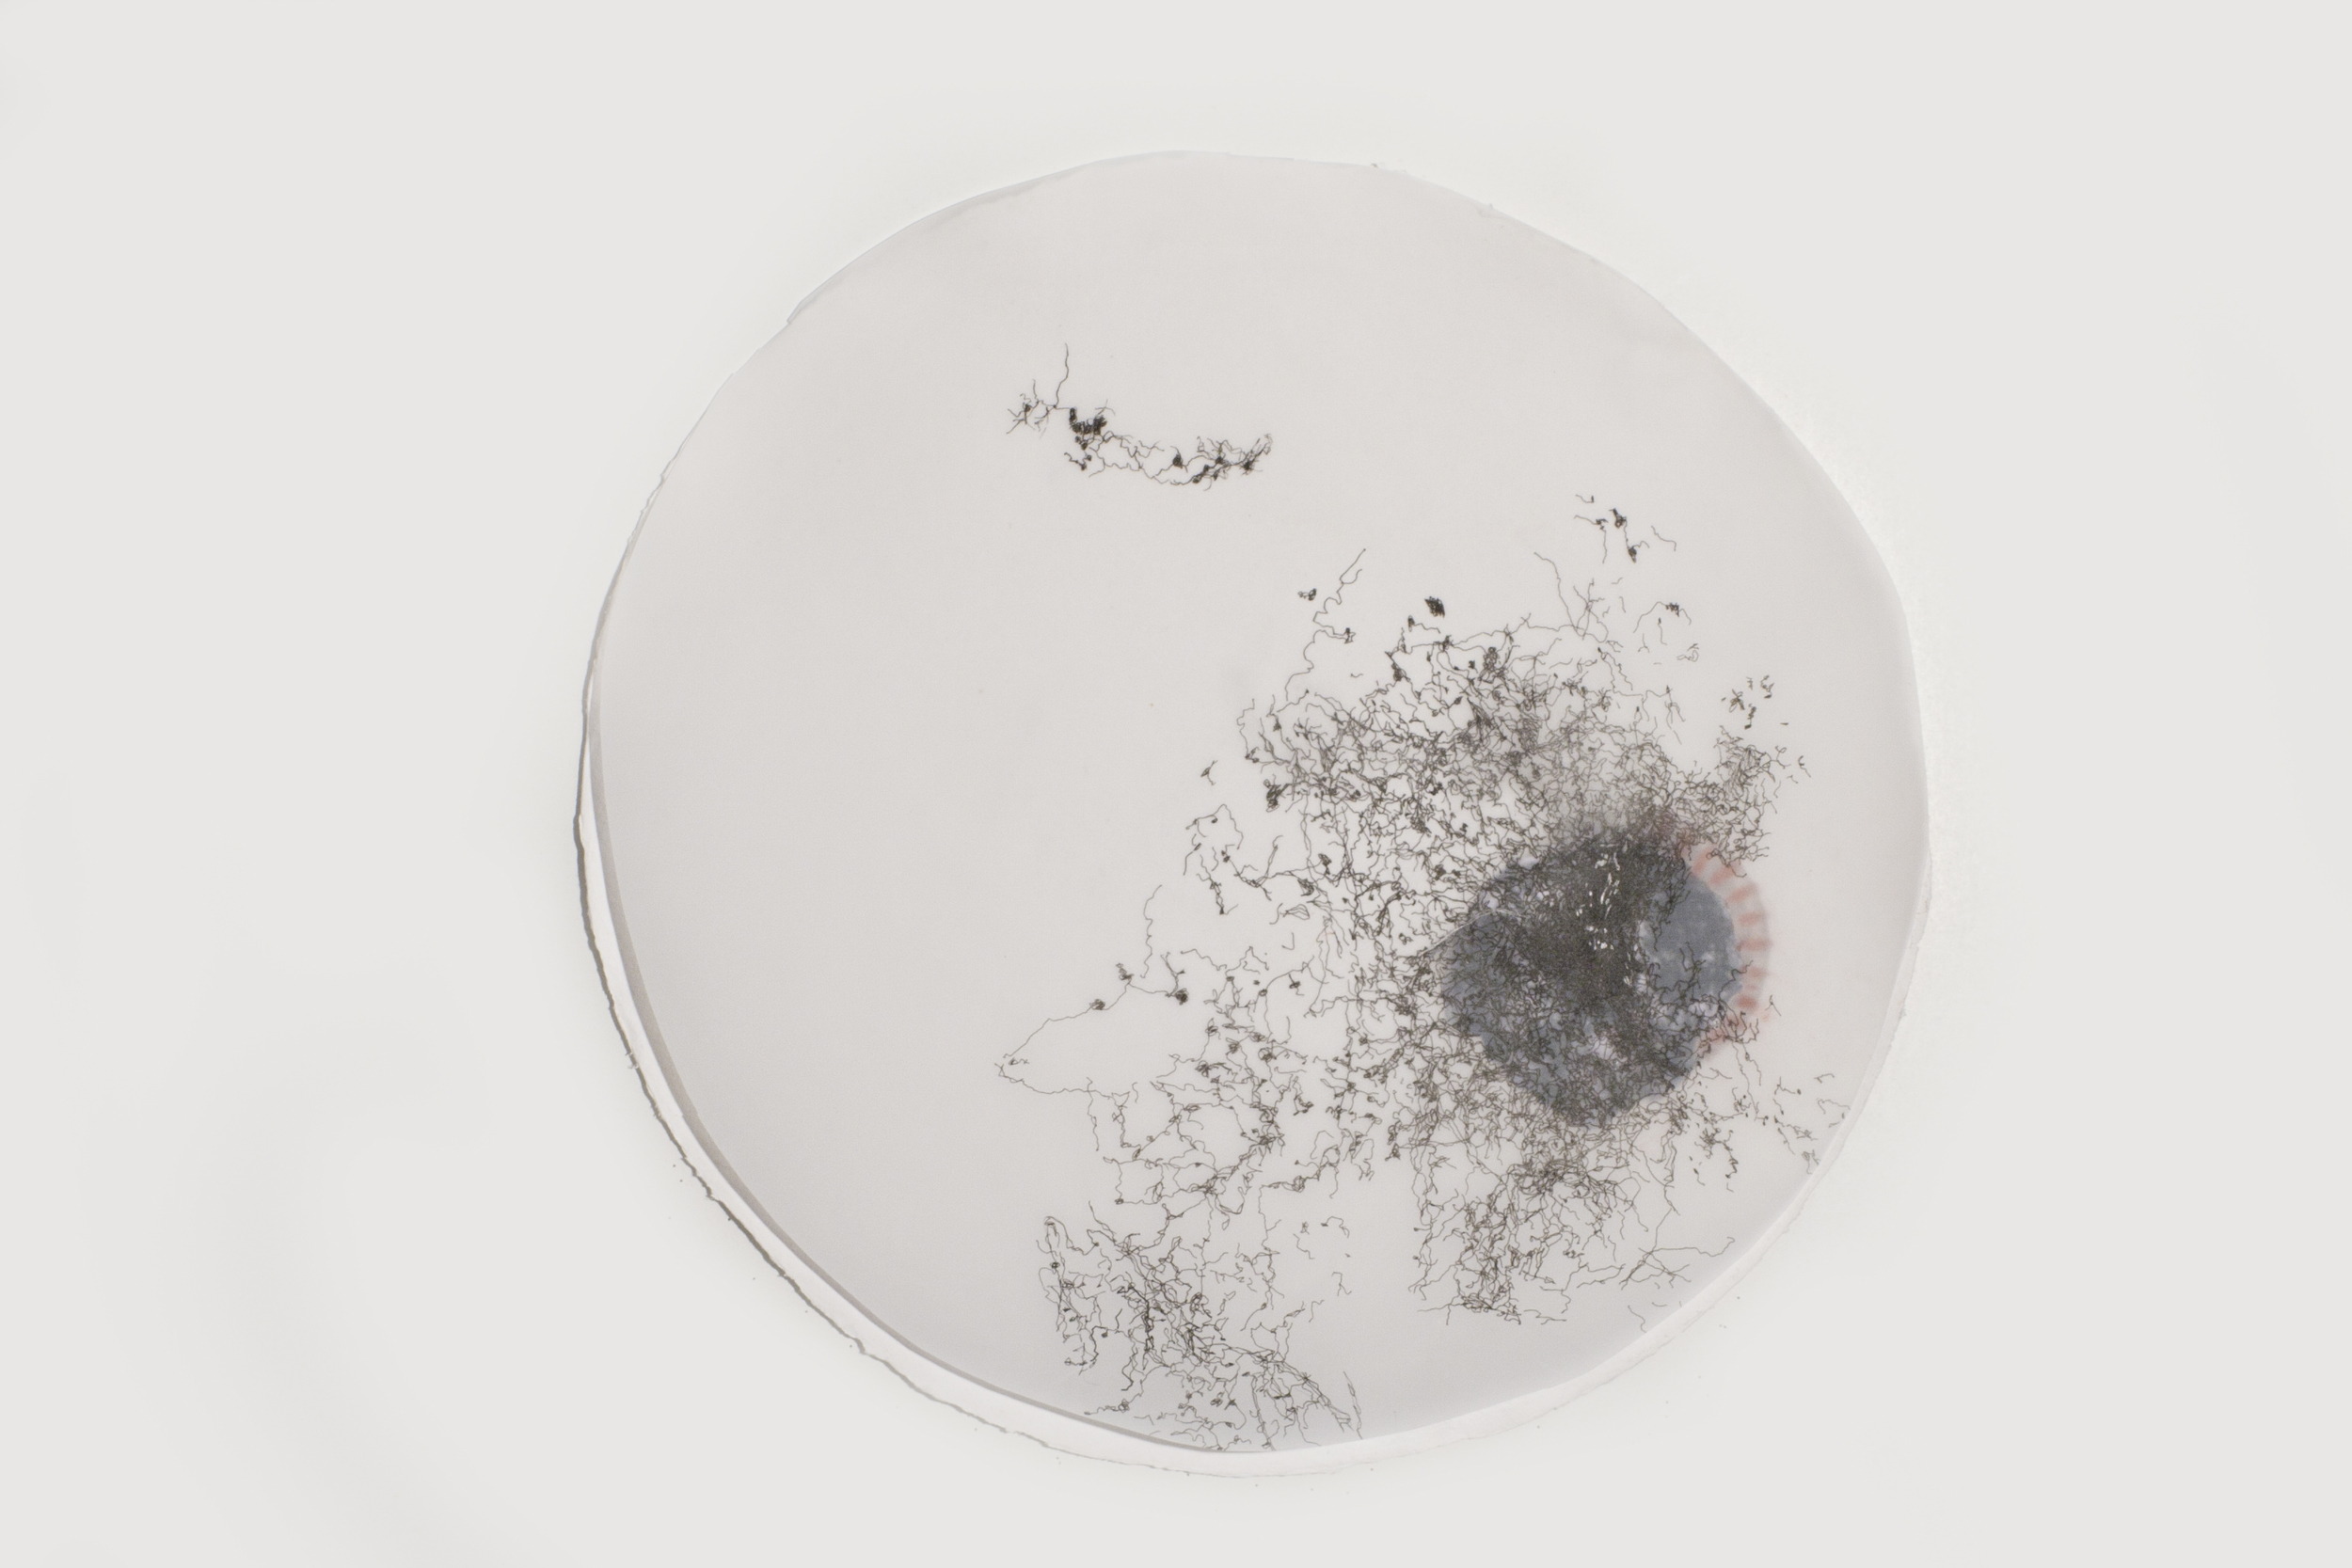 """In the Scale of Things 7   ink, collage, on vellum   12""""diameter   2010-2011"""